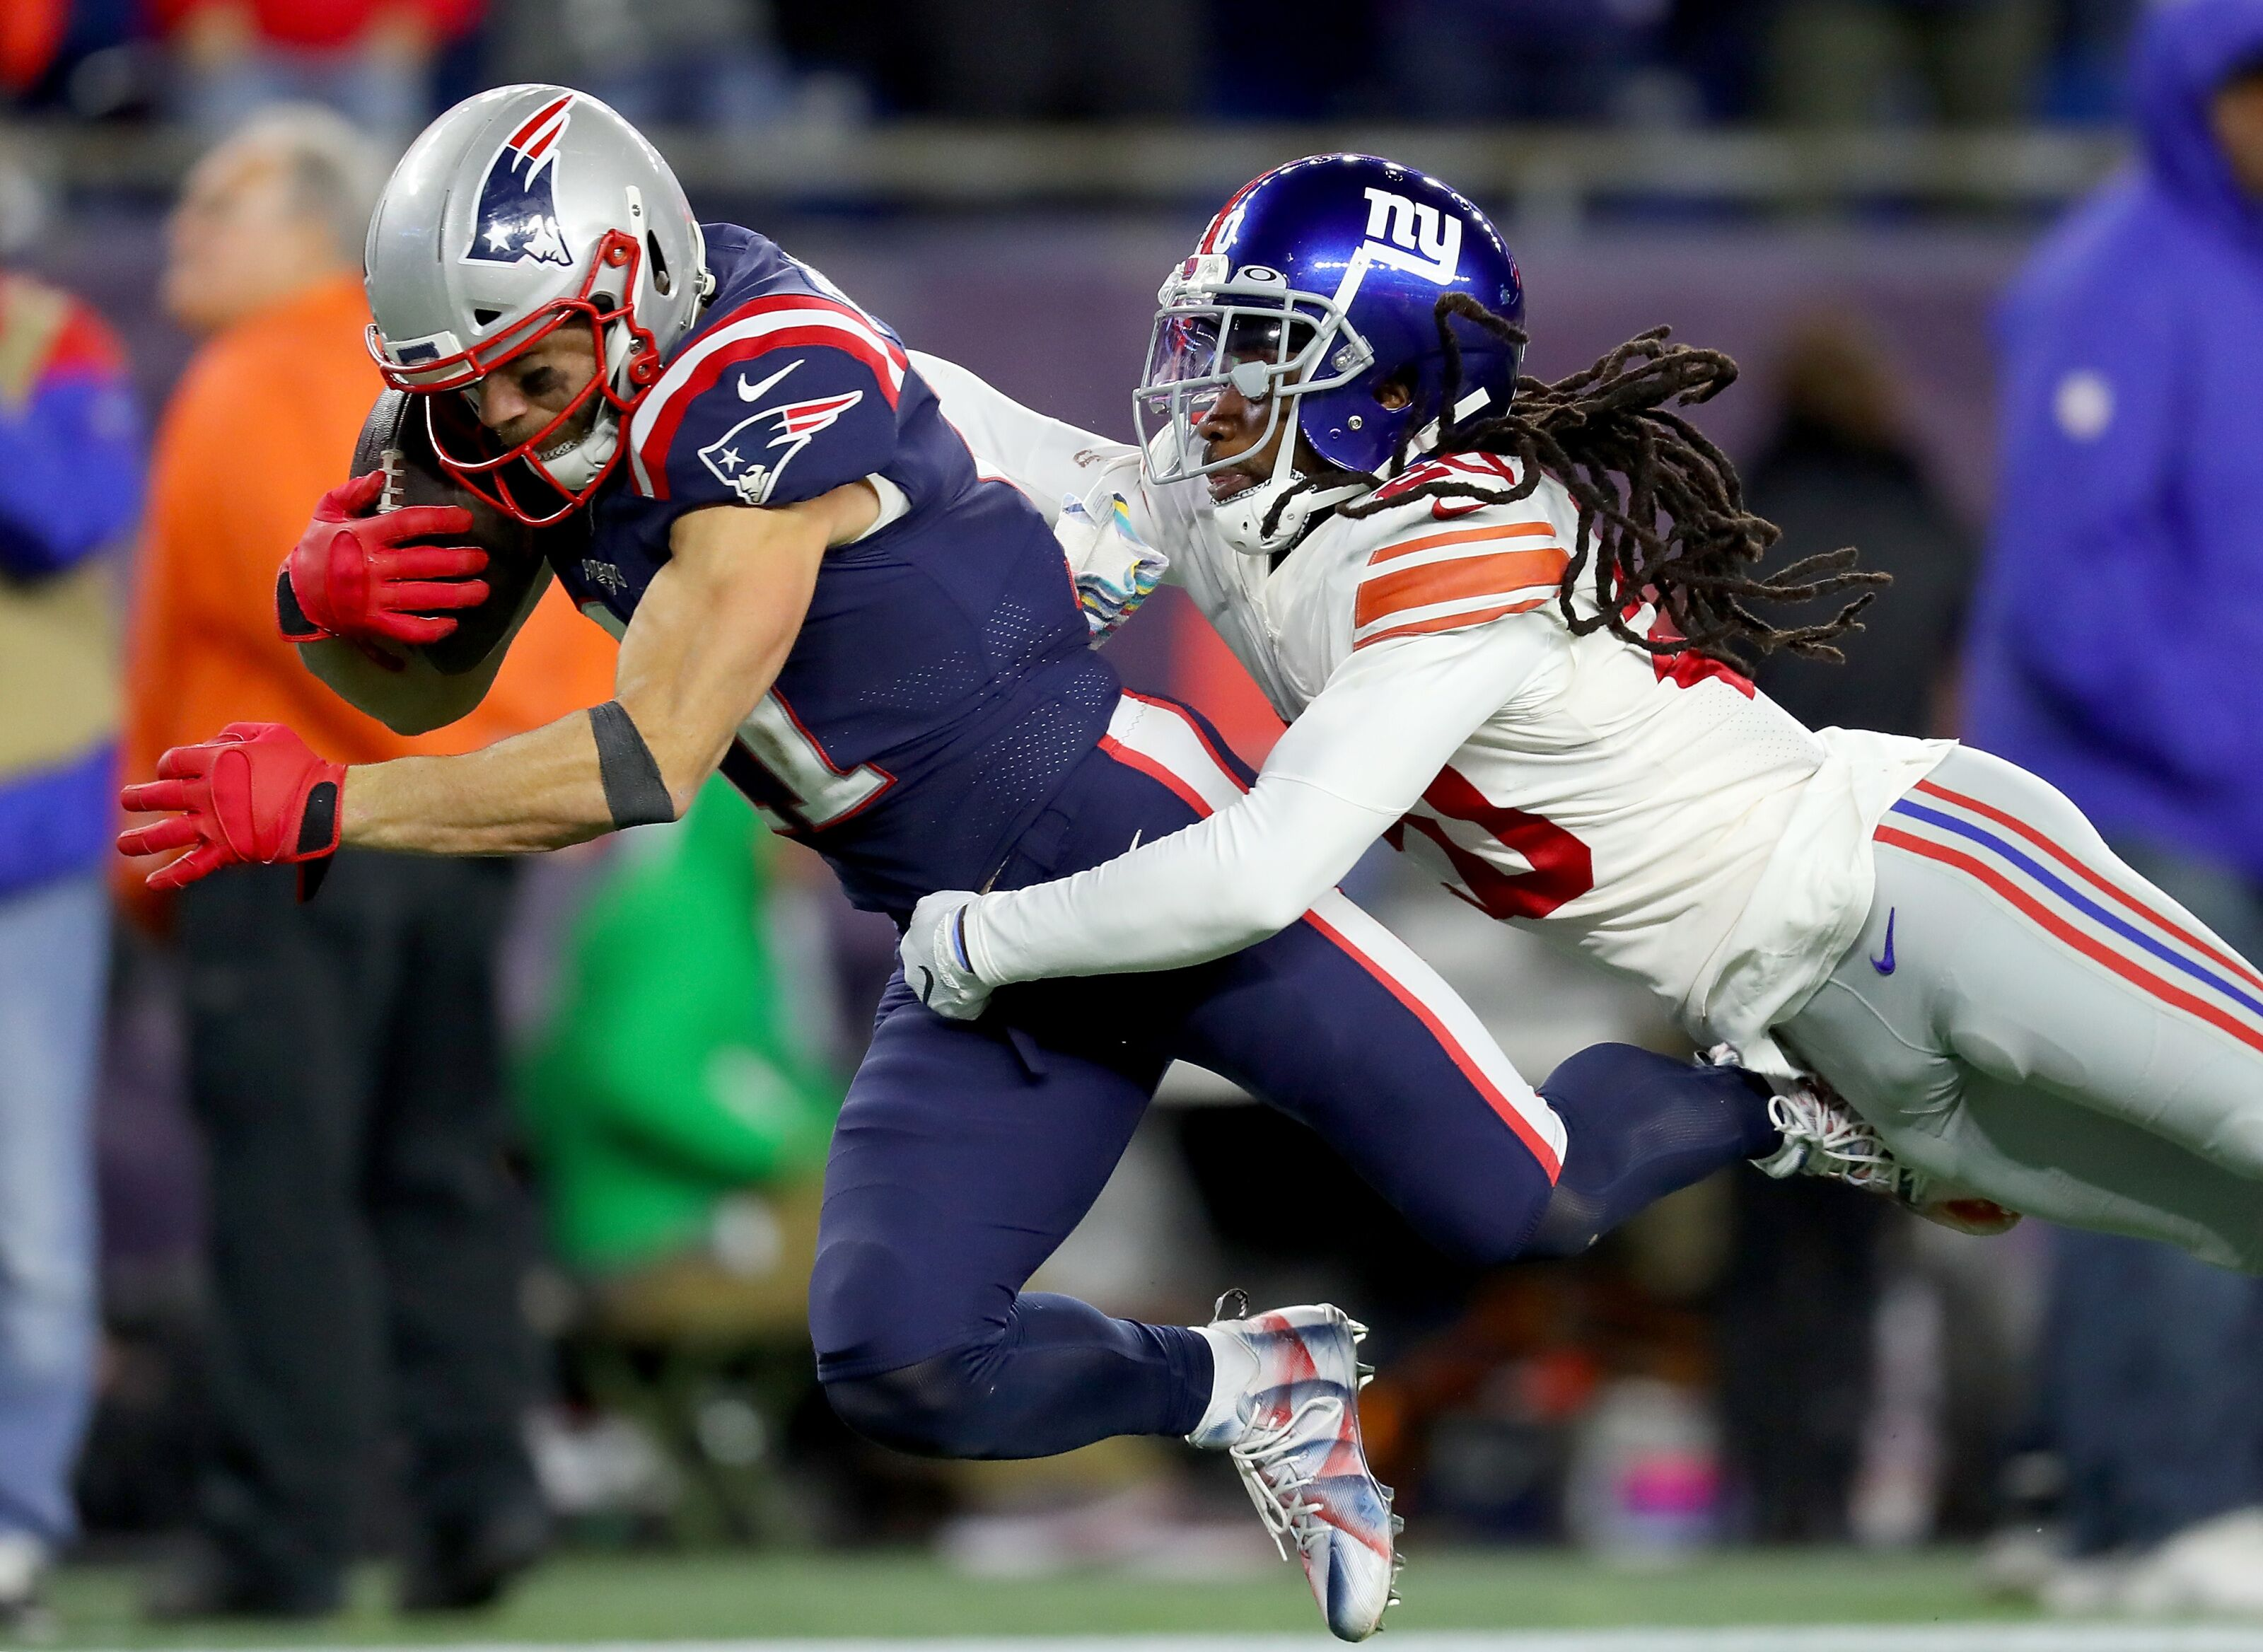 New England Patriots 4 Downs Review: Week 6 vs New York Giants